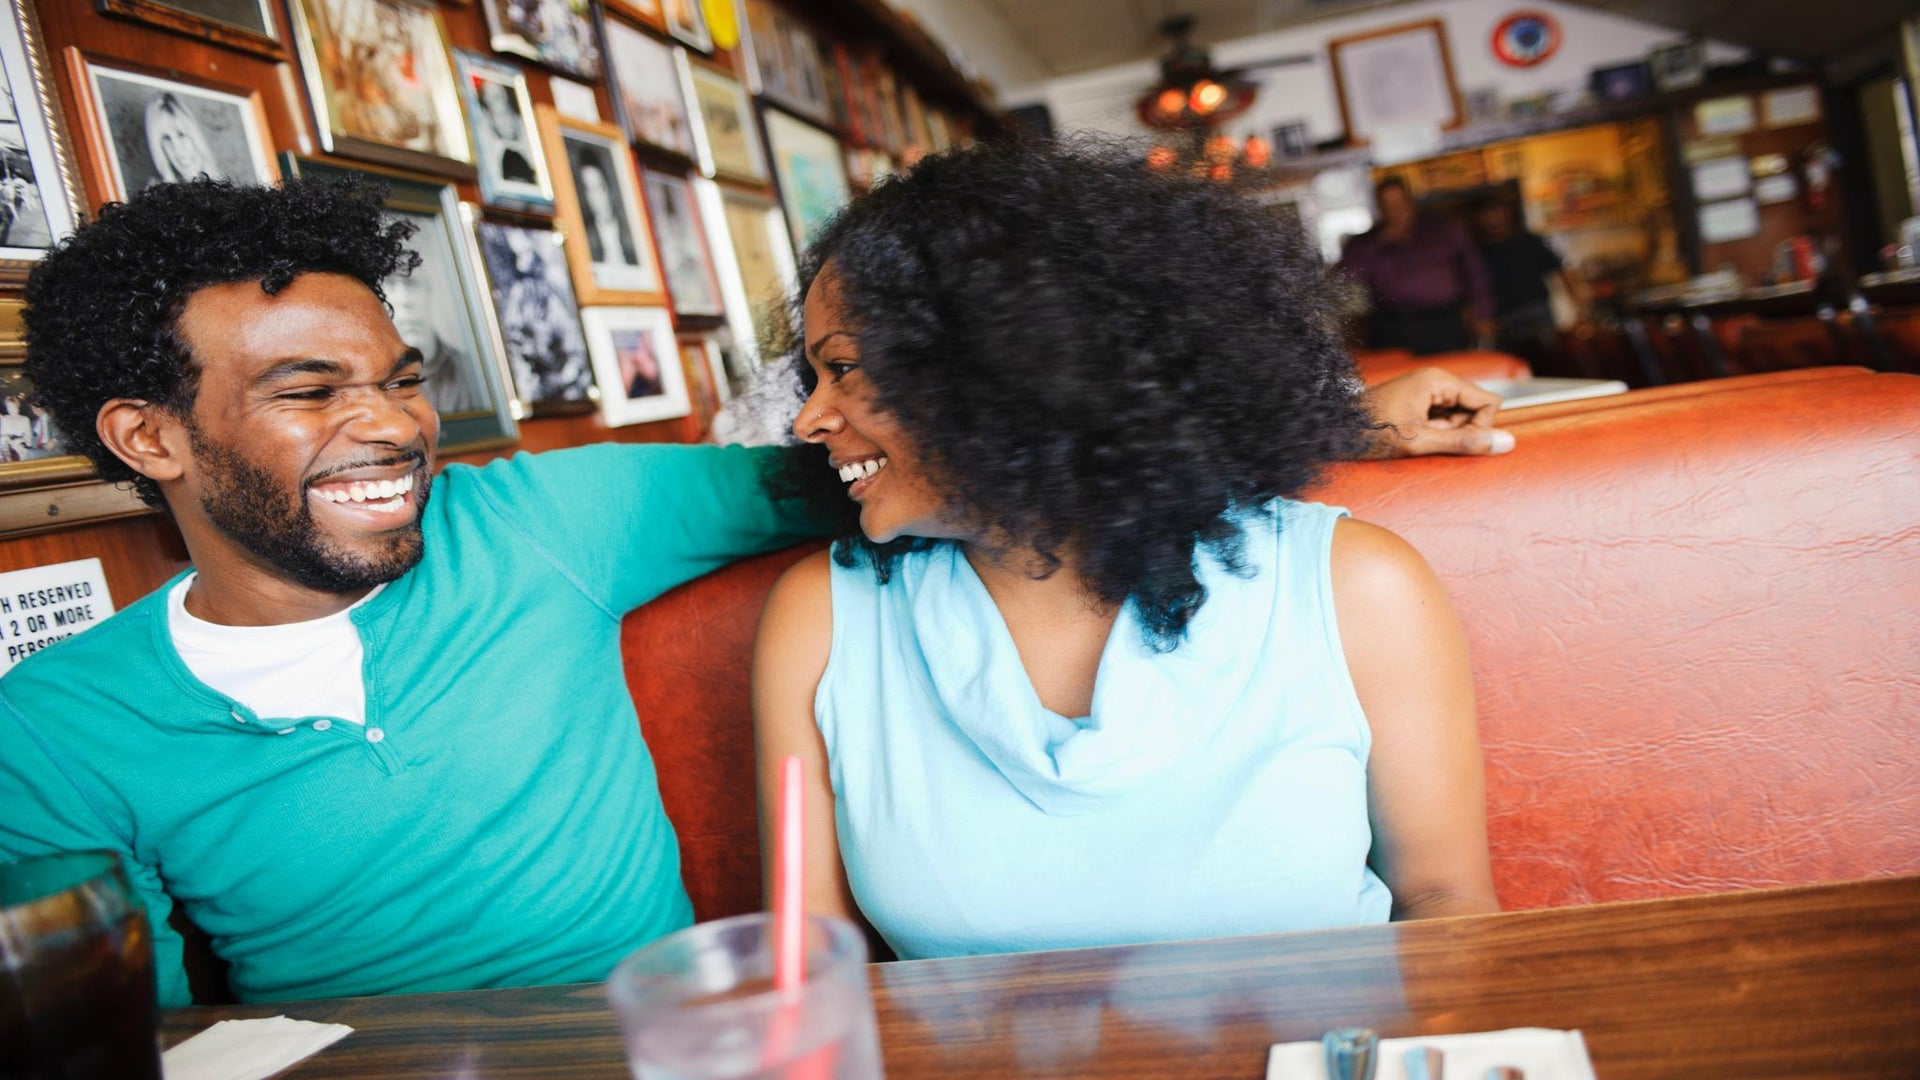 ESSENCE Poll: Where Do You Prefer to Have a First Date?